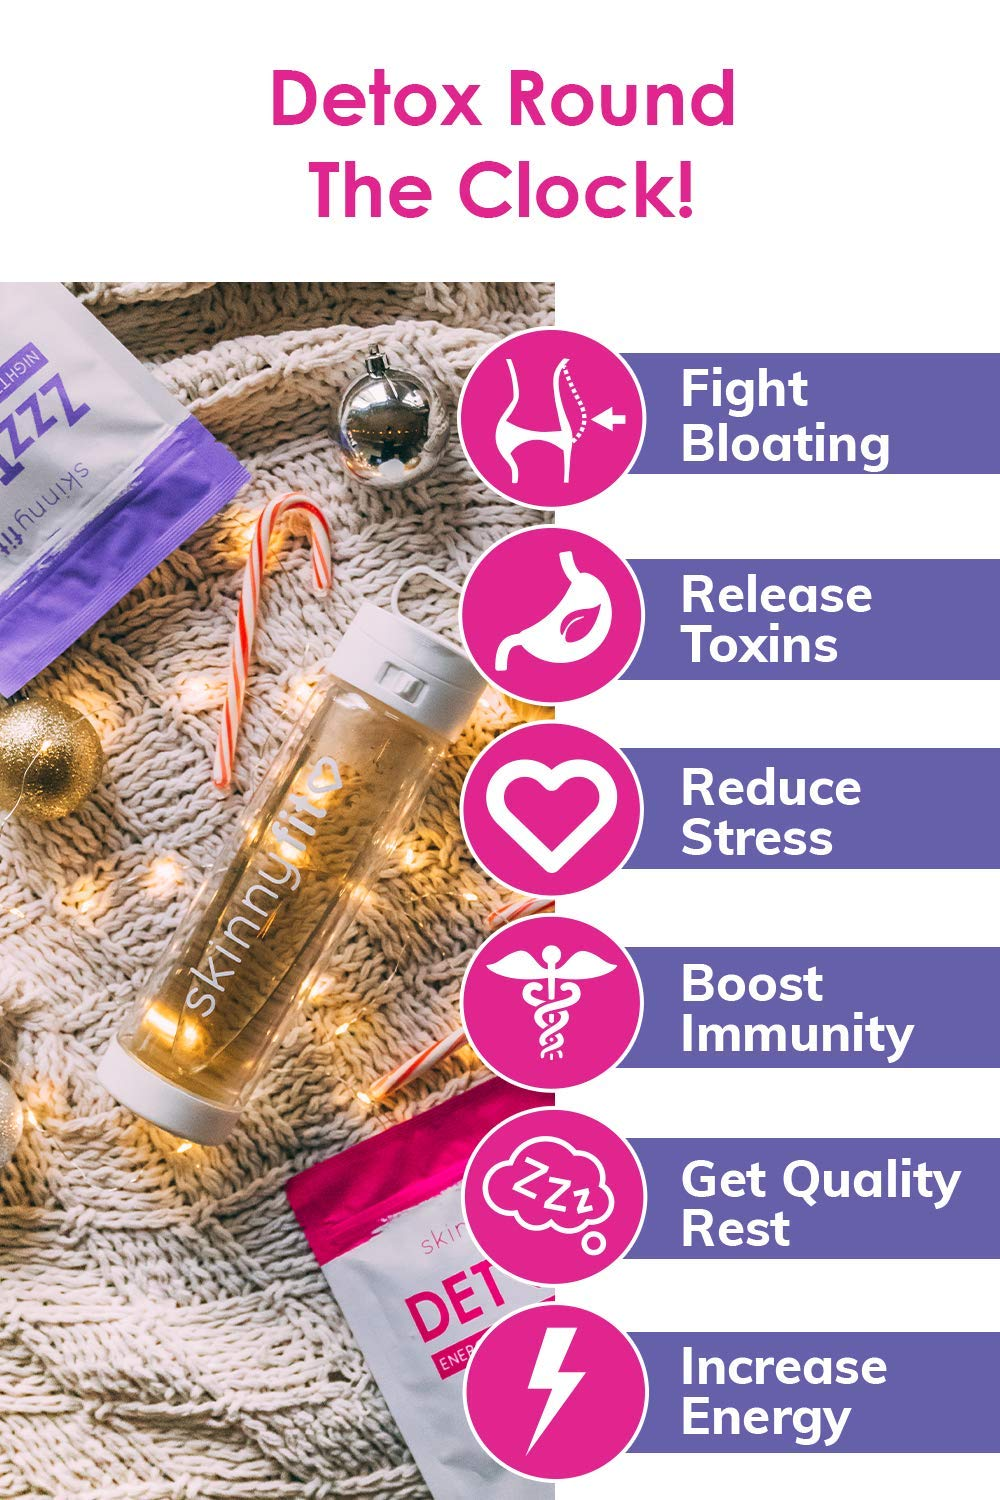 SkinnyFit Detox and ZzzTox 24/7 Bundle 56 Servings: Cleanse with All-Natural, Laxative-Free, Green Tea Leaves, Chamomile and Lavender. Gluten-Free - Slimming Way to Release Toxins and Reduce Bloating by SkinnyFit (Image #1)